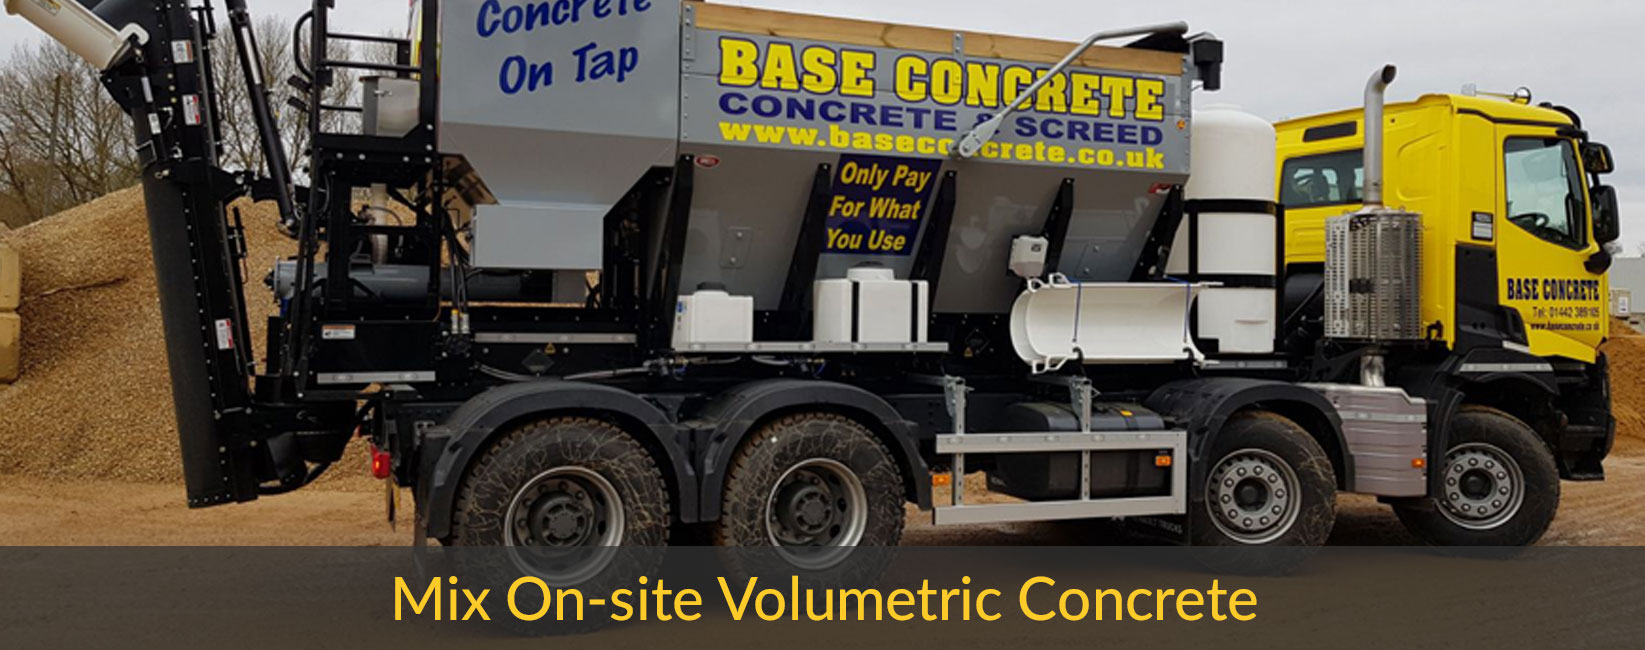 Mix onsite volumetric concrete truck